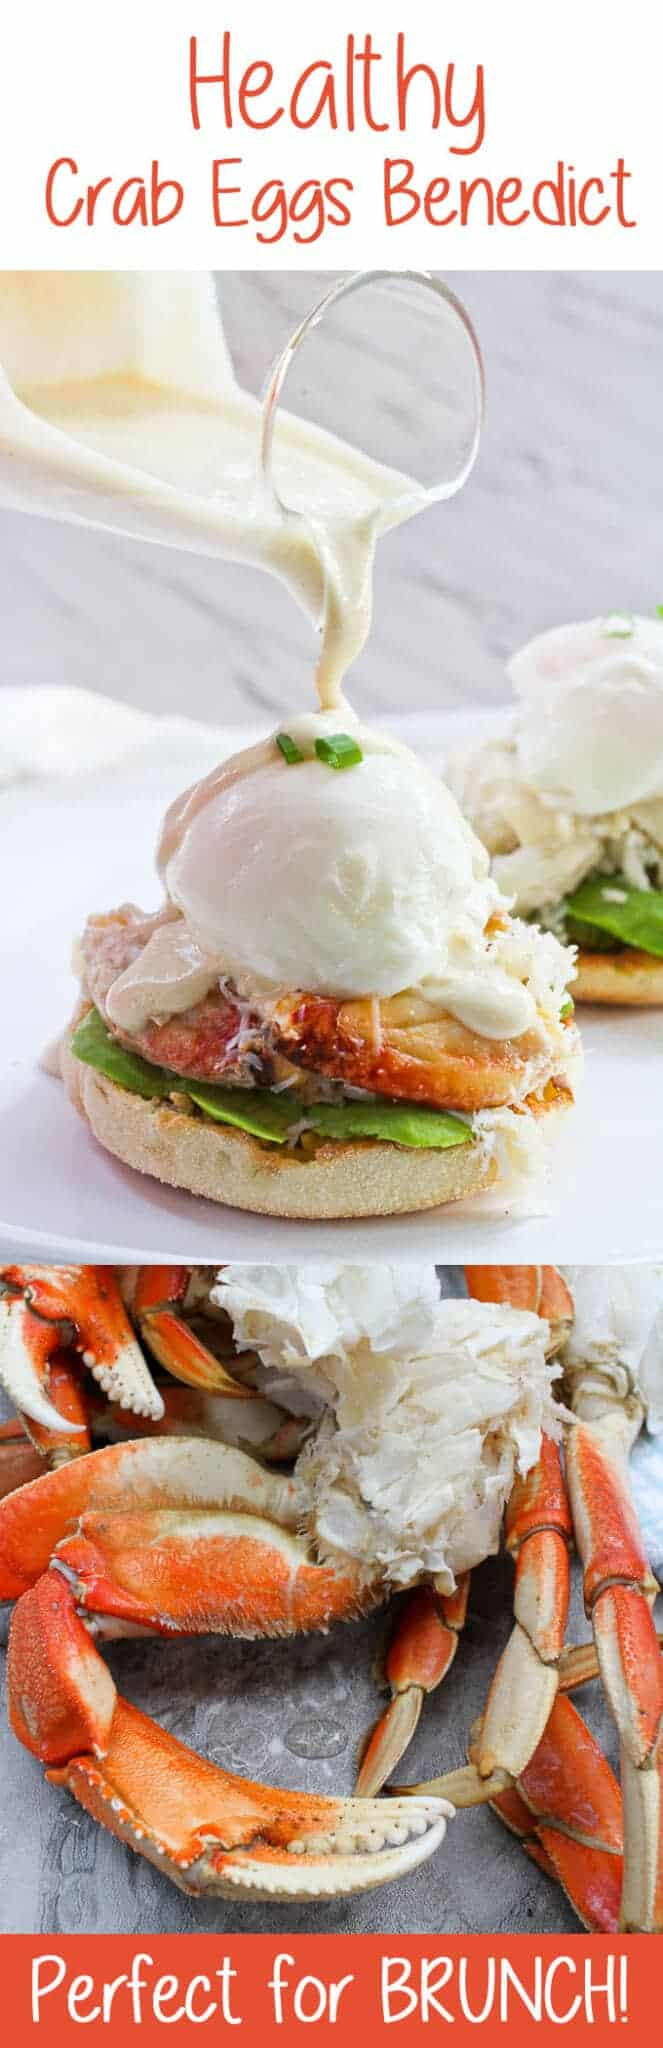 #ad This Healthy Crab Eggs Benedict is made with Dungeness crab legs, a poached egg, and a creamy yogurt sauce, and is a lighter take on the breakfast classic! #crabrecipe #healthy #eggsbenedict #seafoodeggsbenedict #healthyeggsbenedict